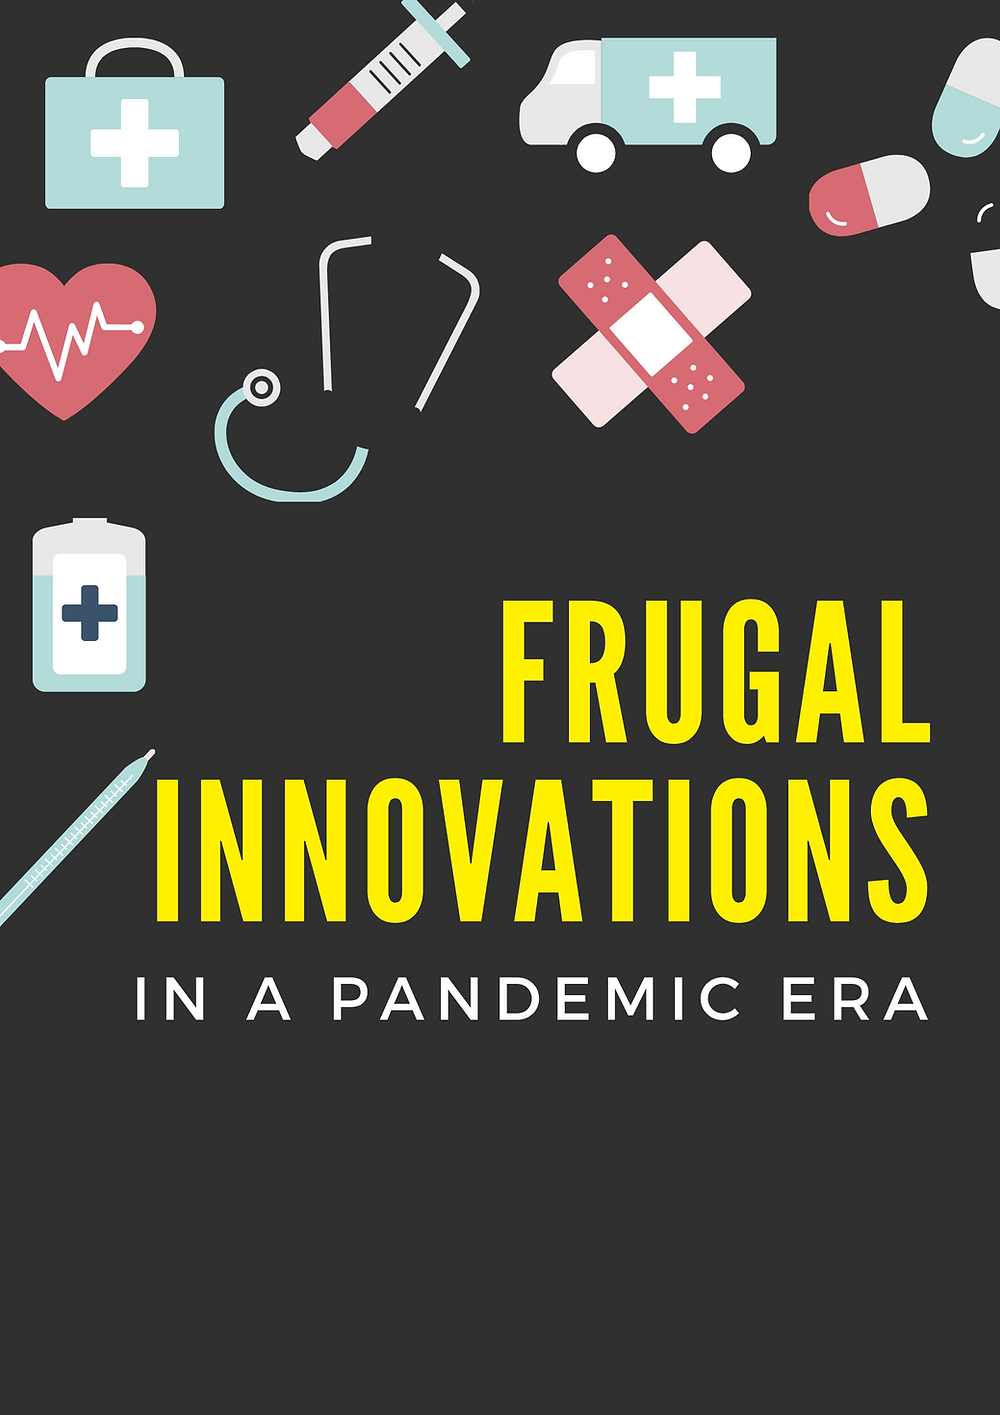 Frugal Innovations in a pandemic era